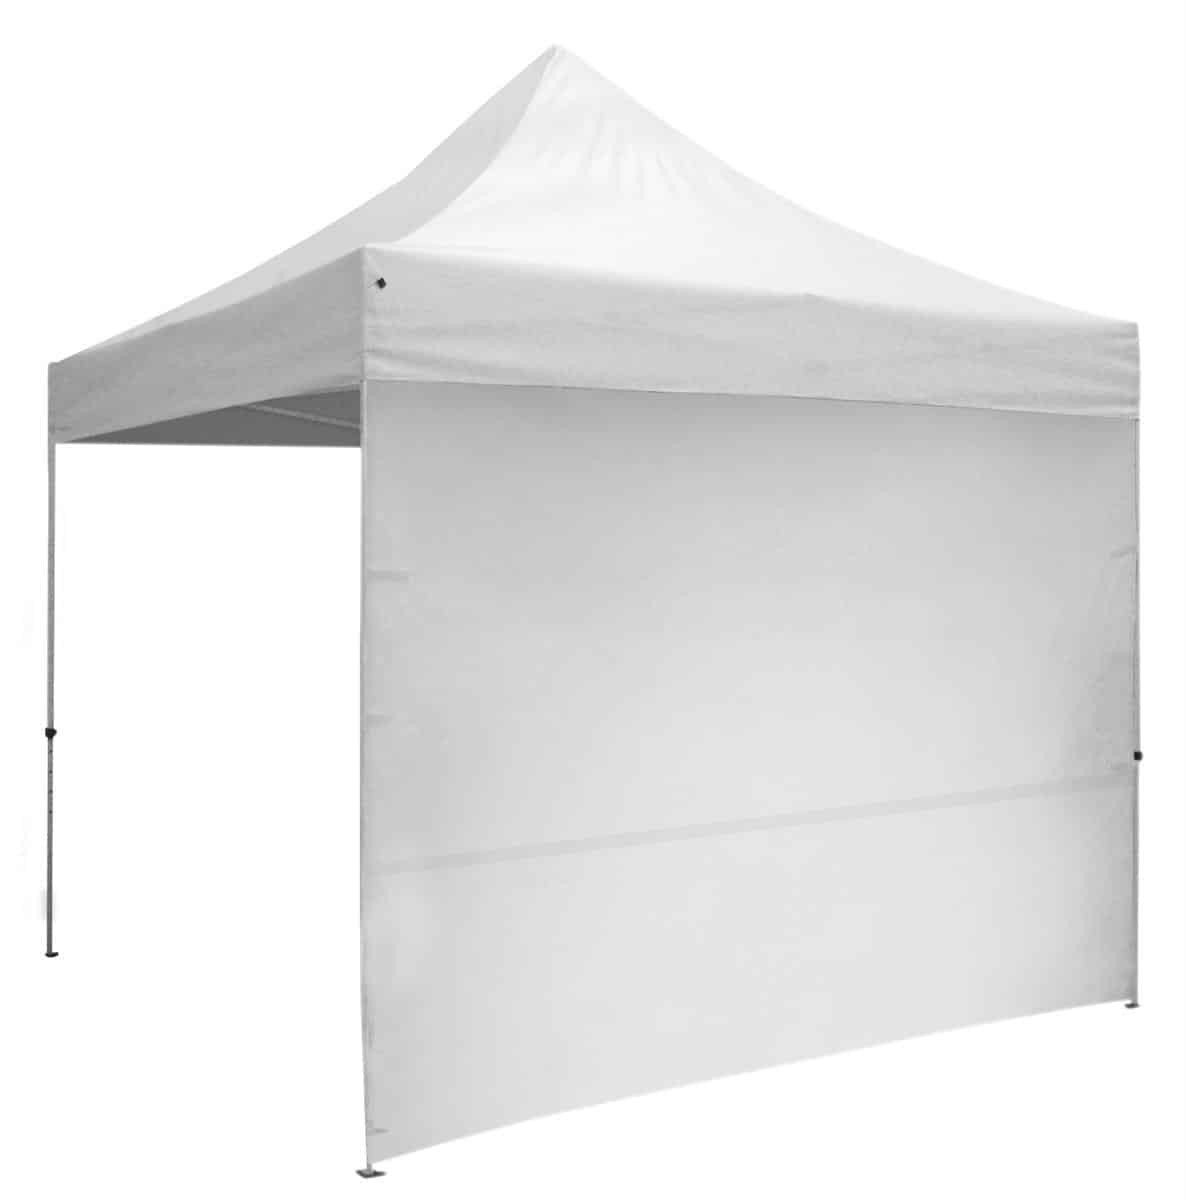 Canopy / Pop Up Sidewalls  sc 1 st  Front Range Event Rental & Pop Up Canopy Sandbags - Front Range Event Rental